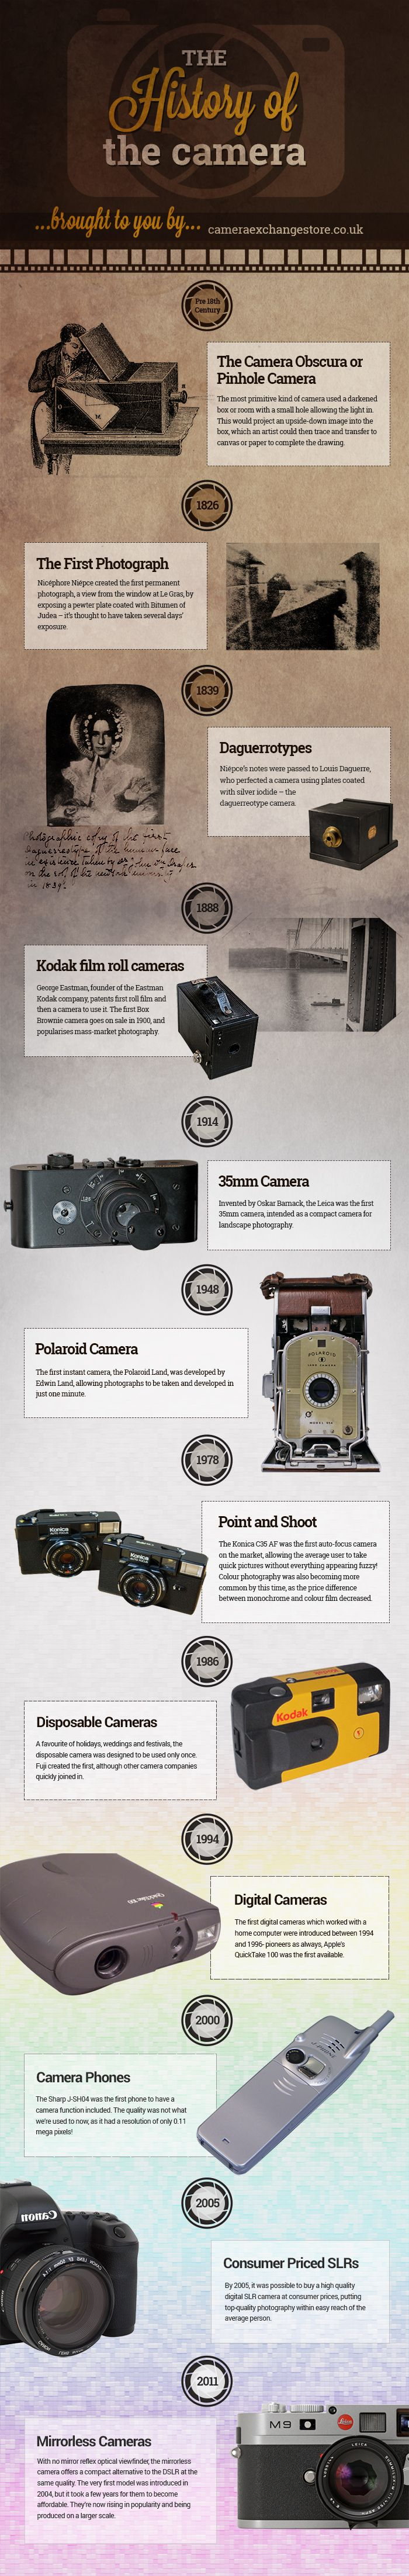 This Infographic Presents the History of the Camera